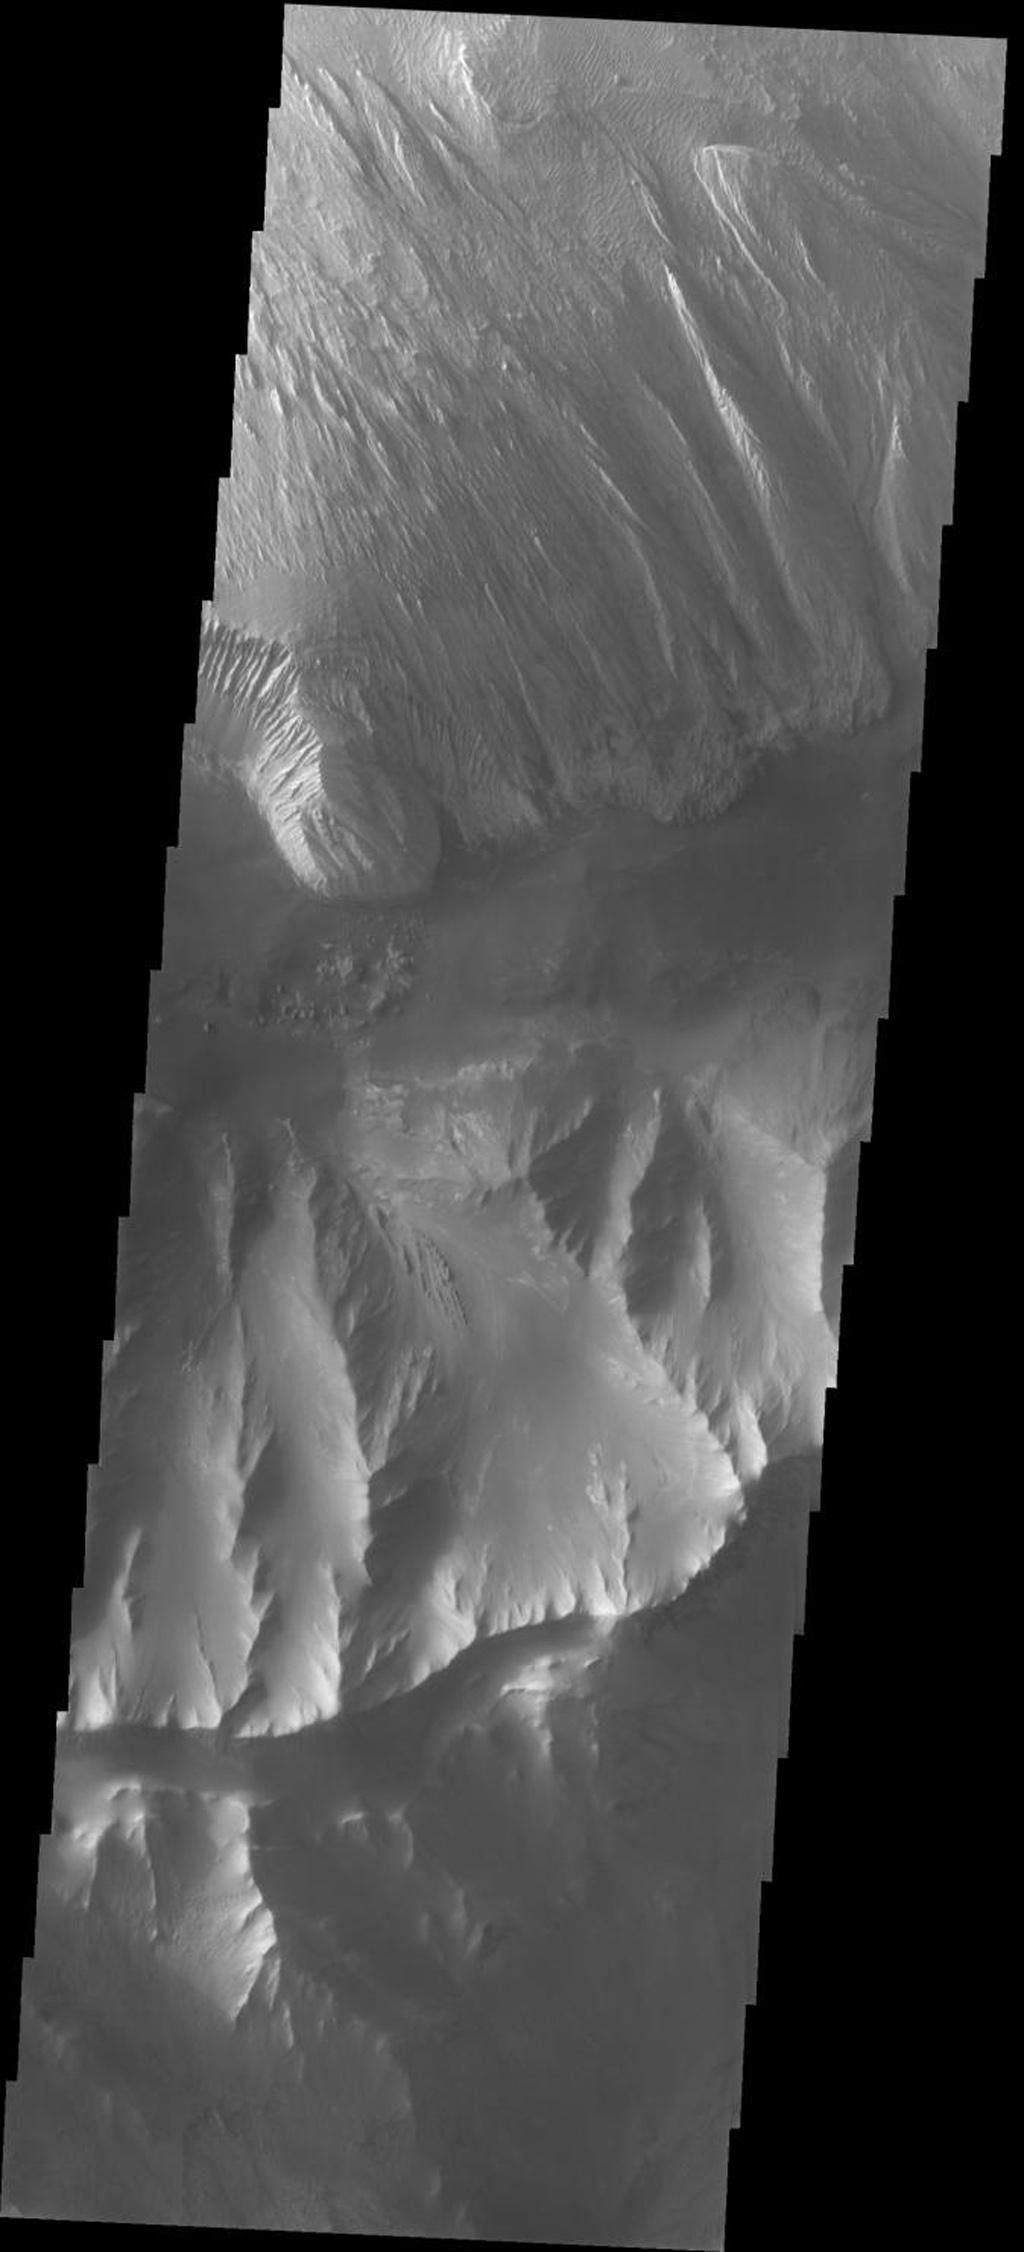 This image released on Sept 23, 2004 from NASA's 2001 Mars Odyssey shows a hill formation on Mars separating Ophir and Candor Chasmas and an interesting wind etched rock formation in Ophir Chasma.